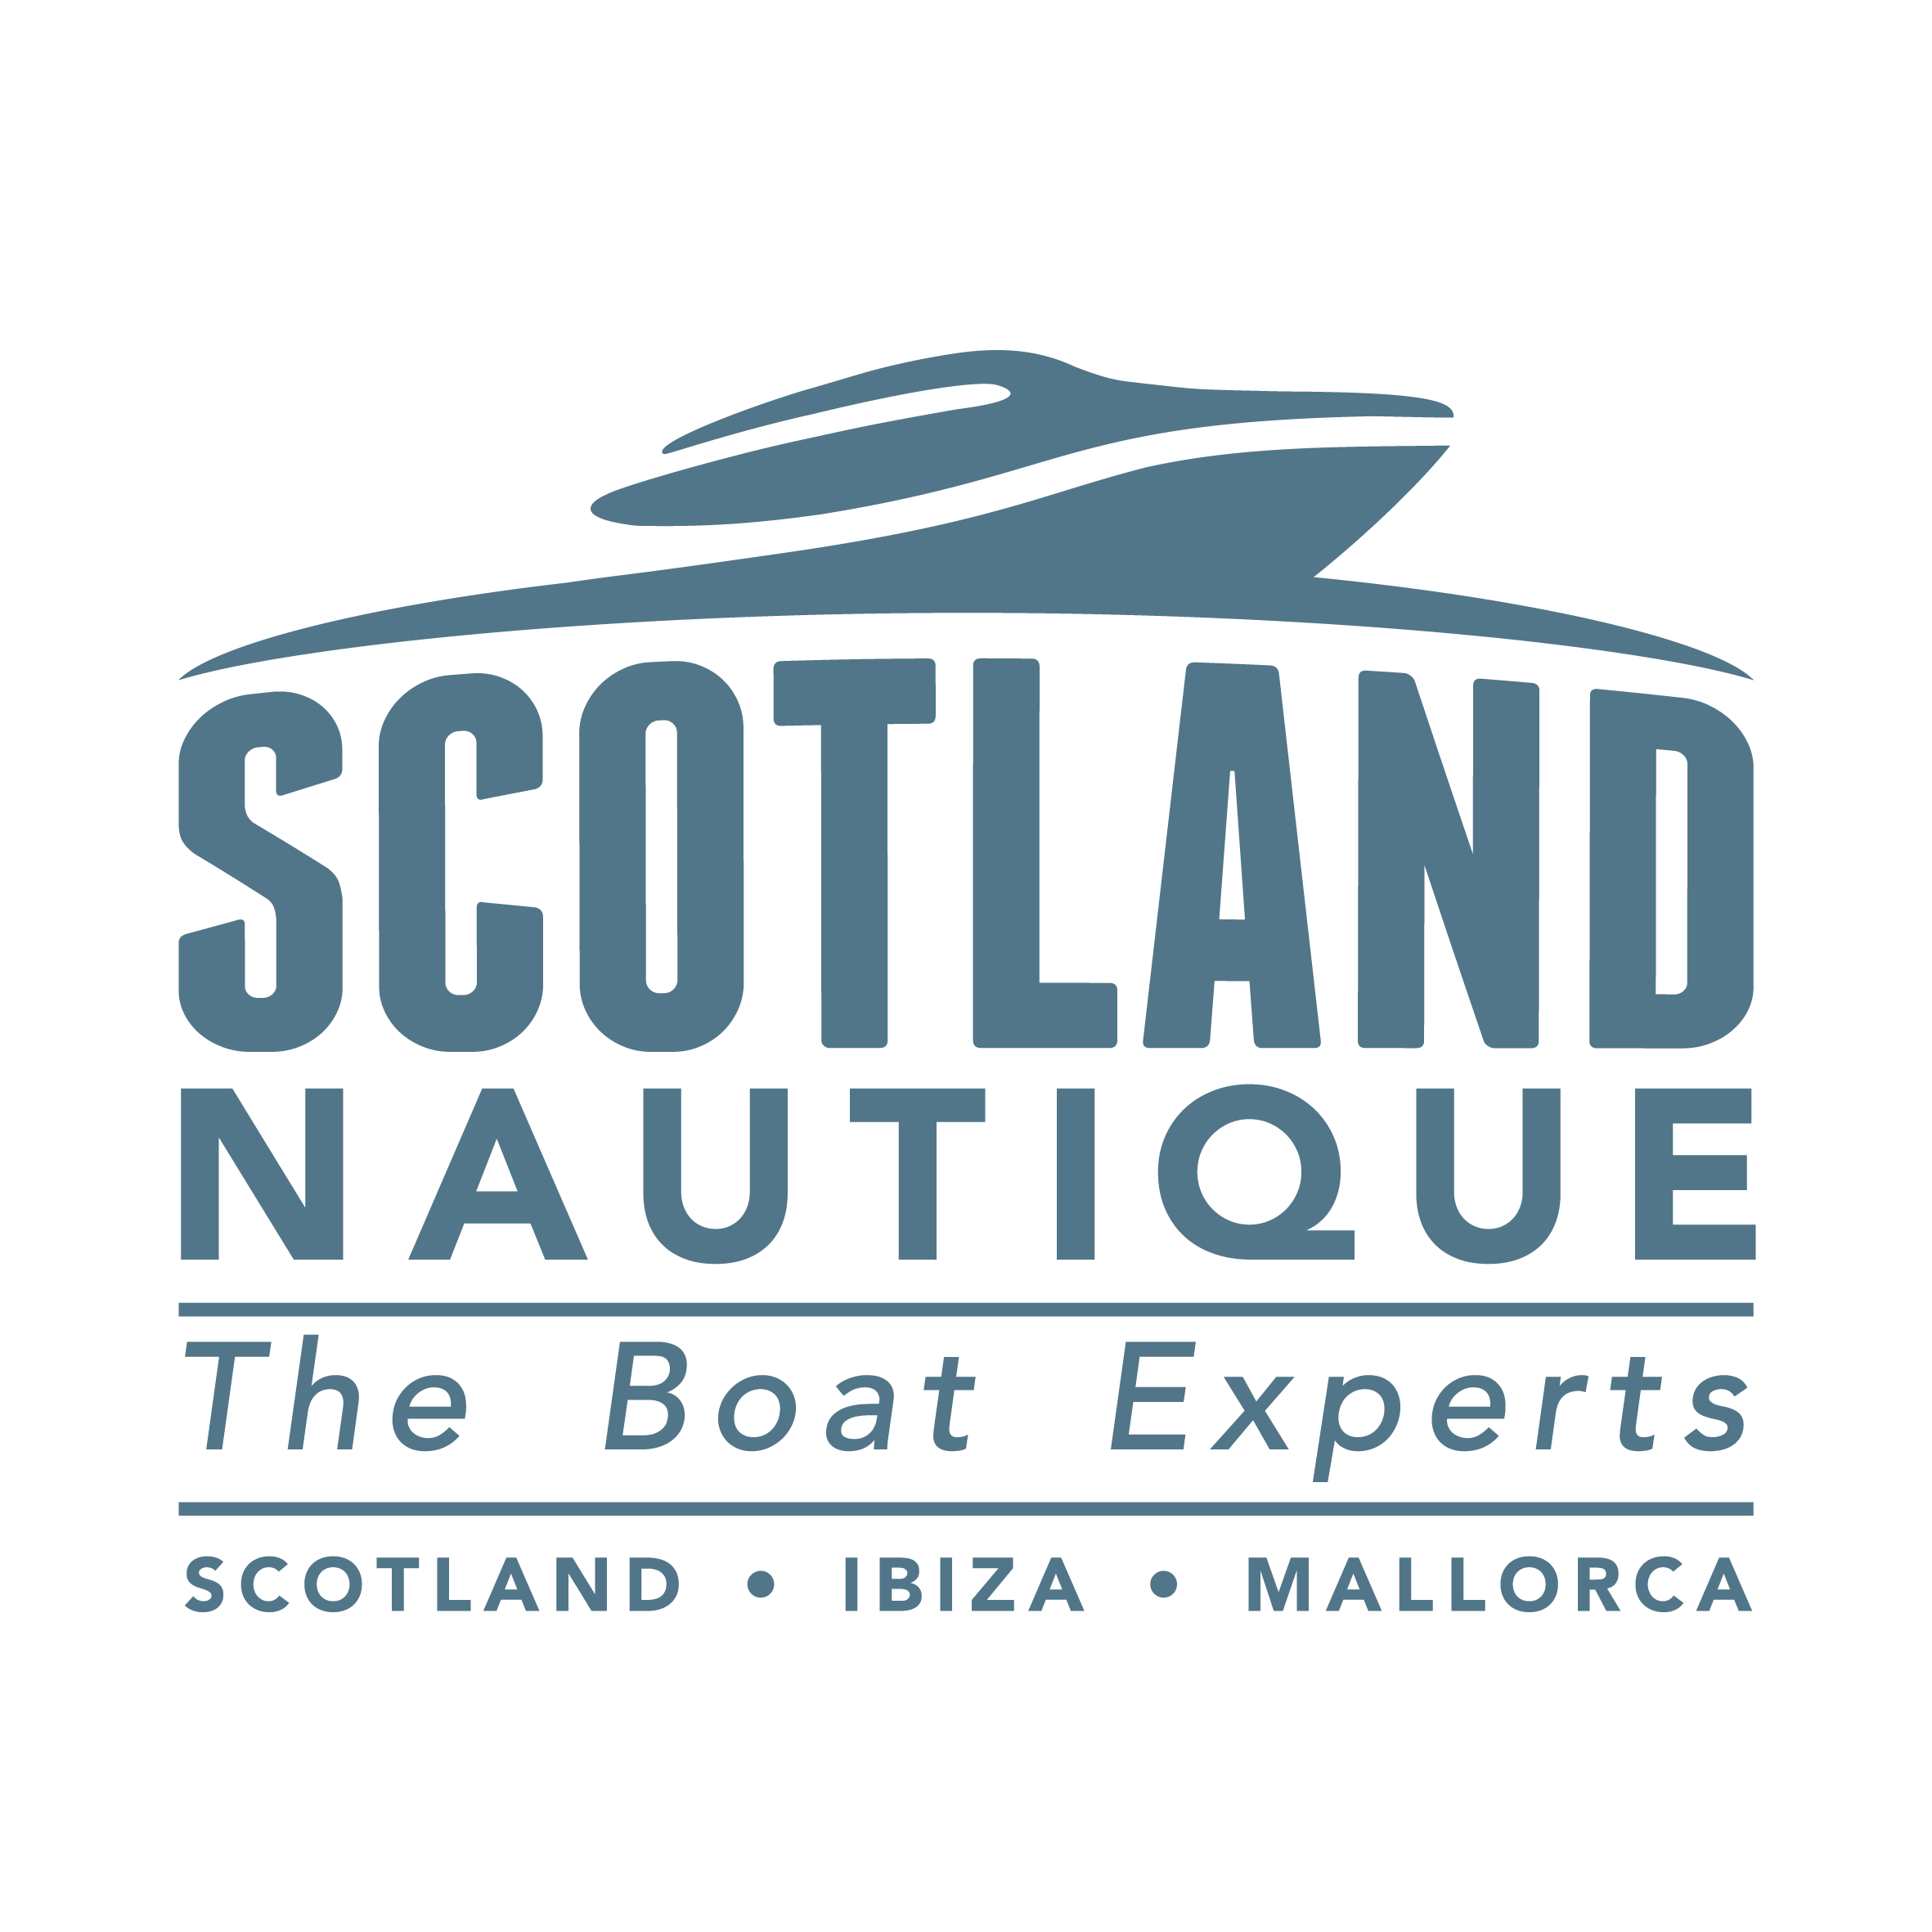 ScotlandNautique-LogoWhiteTag.png